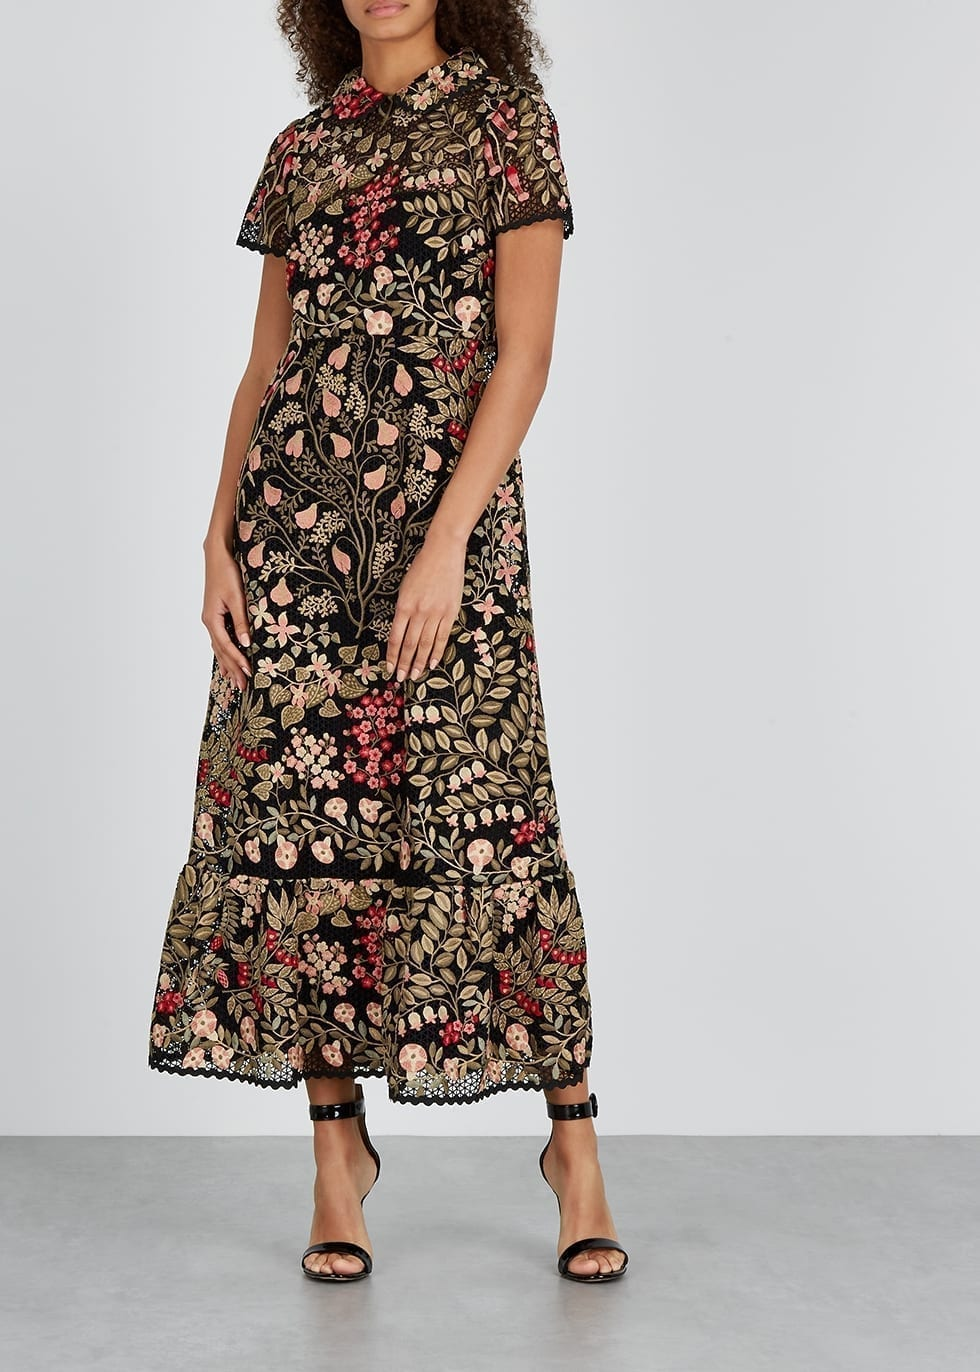 RED VALENTINO Black Floral-embroidered Macramé Dress